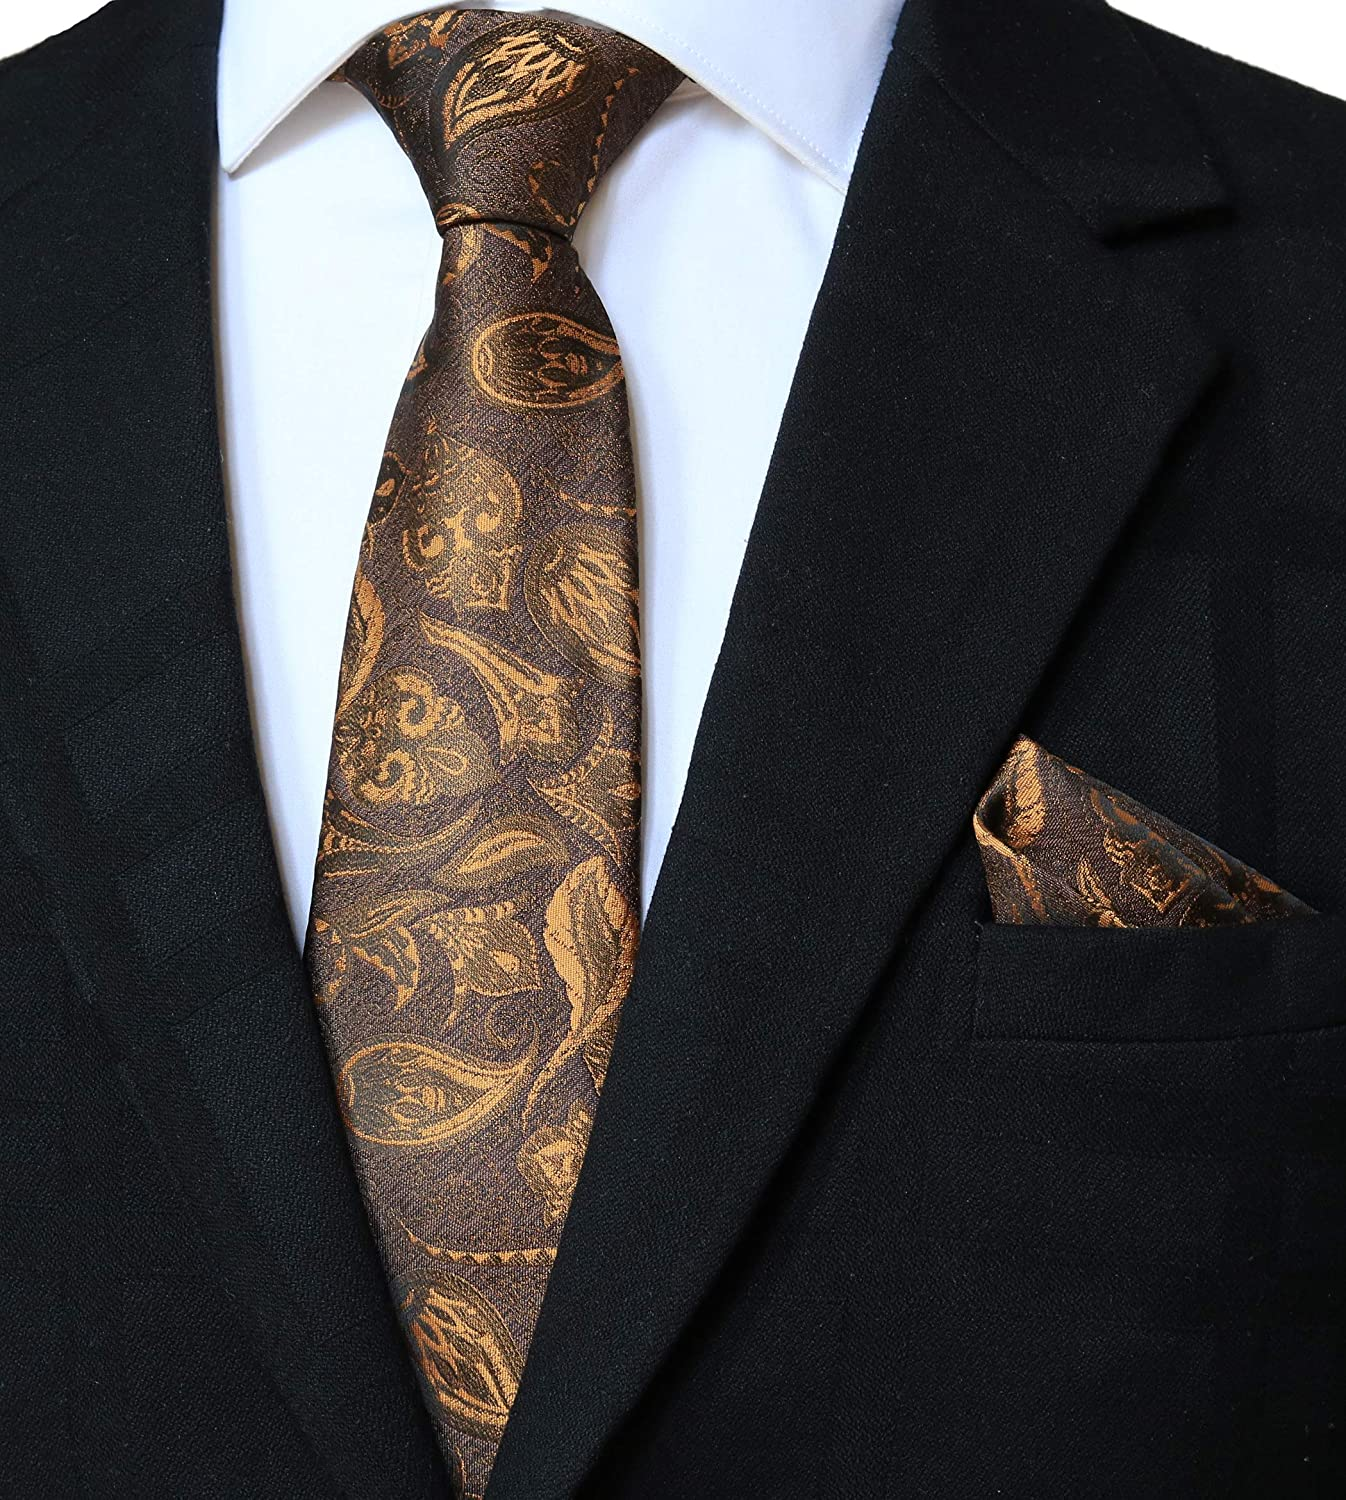 NEW MEN/'S 100/% SILK MEN/'S NECK TIE /& POCKET SQUARE HANKIE SET BROWN WEDDING PROM